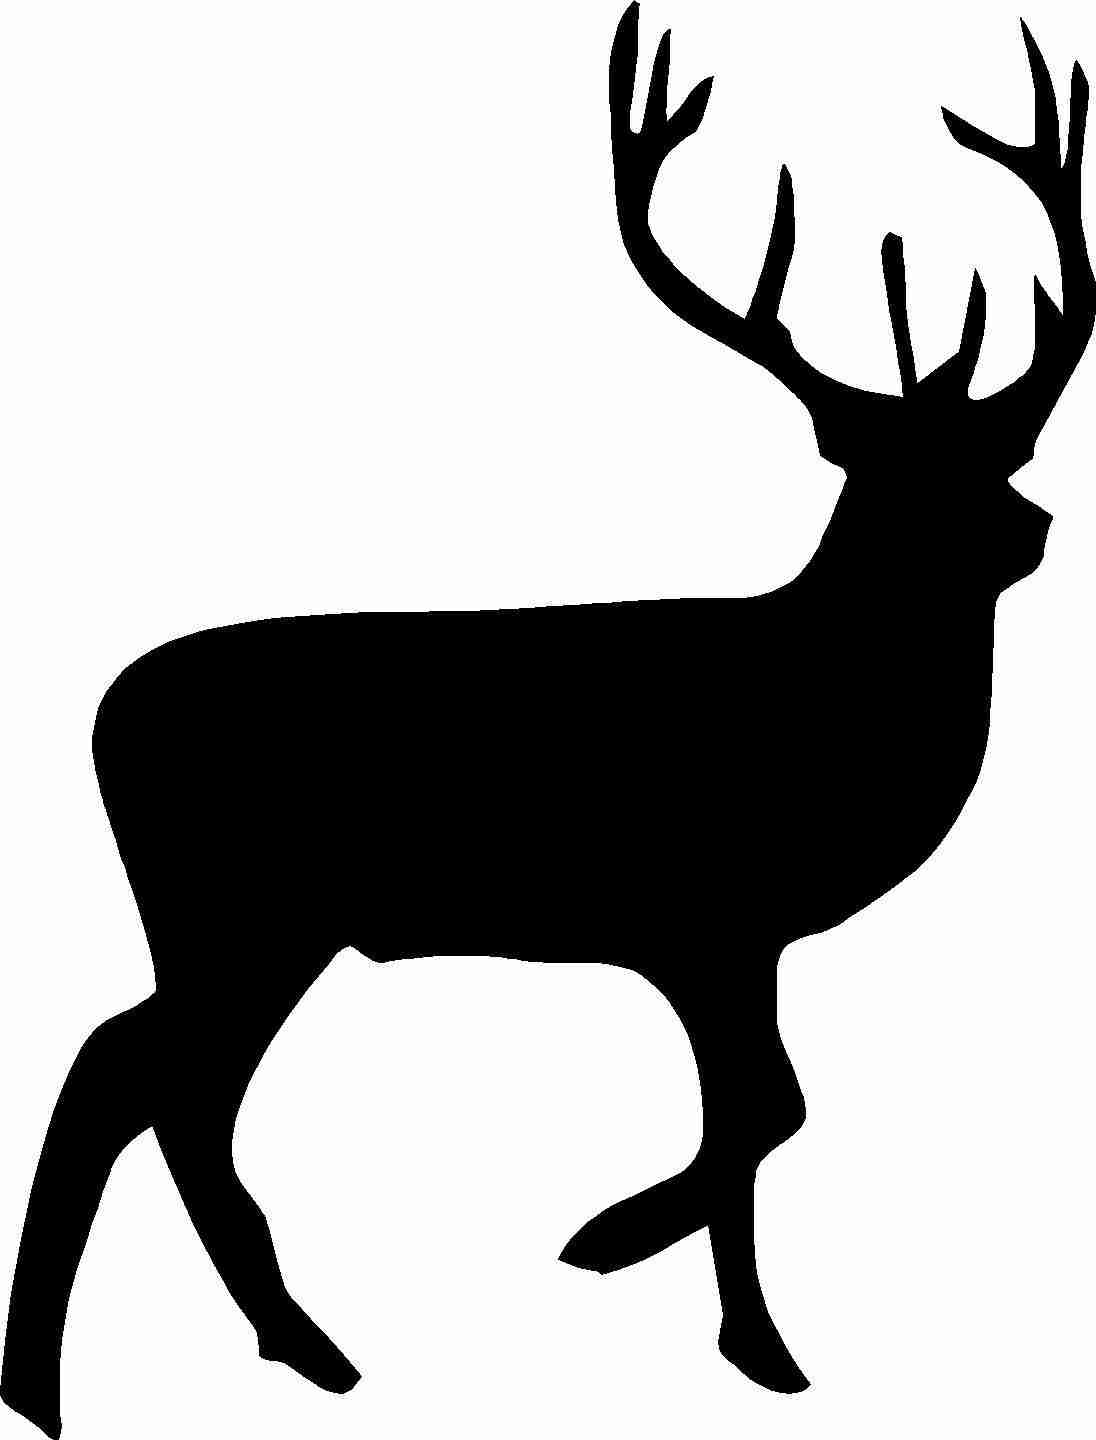 1096x1440 Free Deer Silhouette Download Clip Art On With Stag Silhouettes